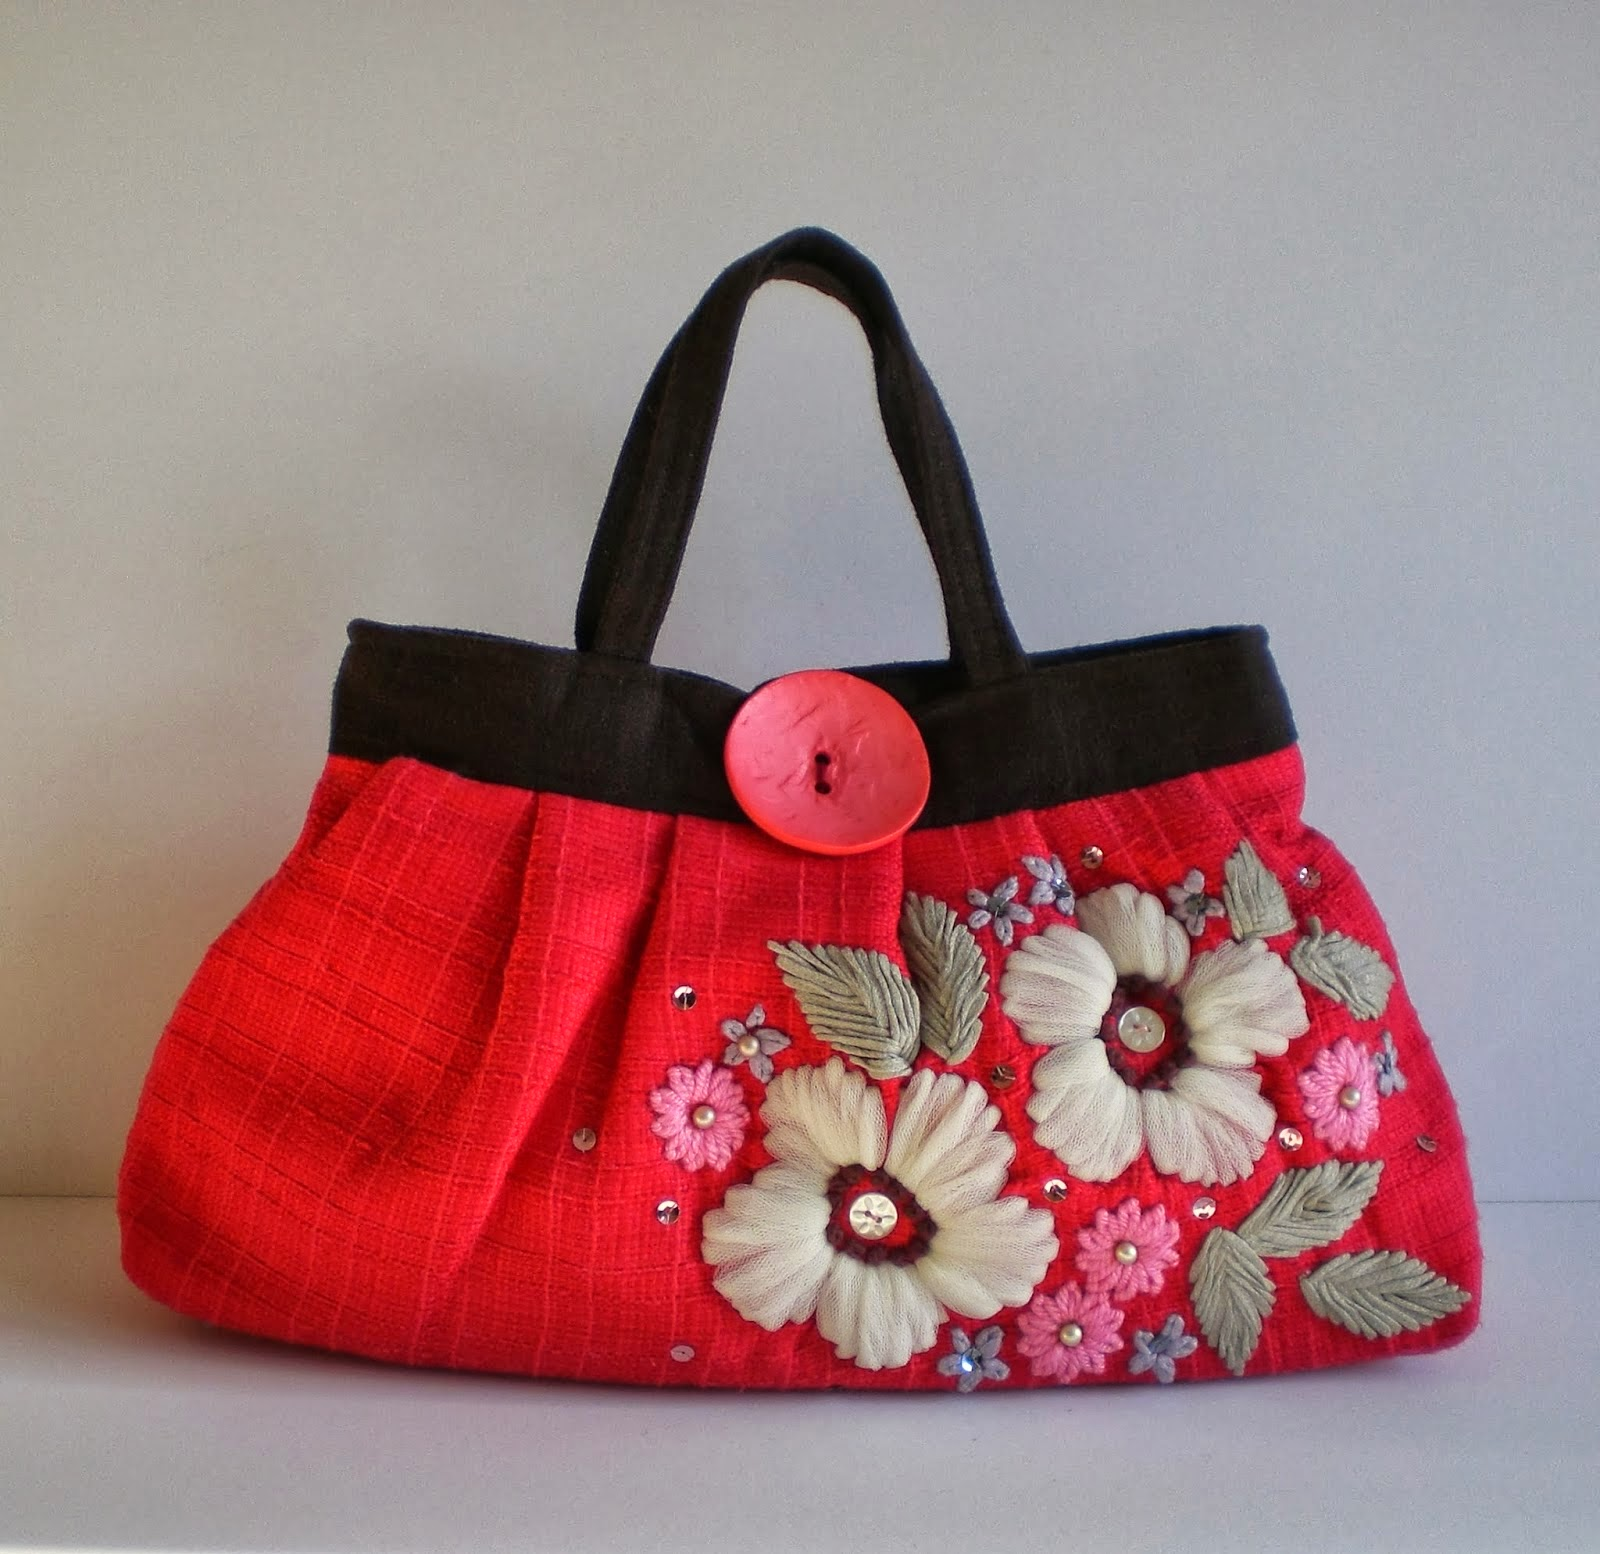 Latest Hand Made Bags For Young Girls And Women